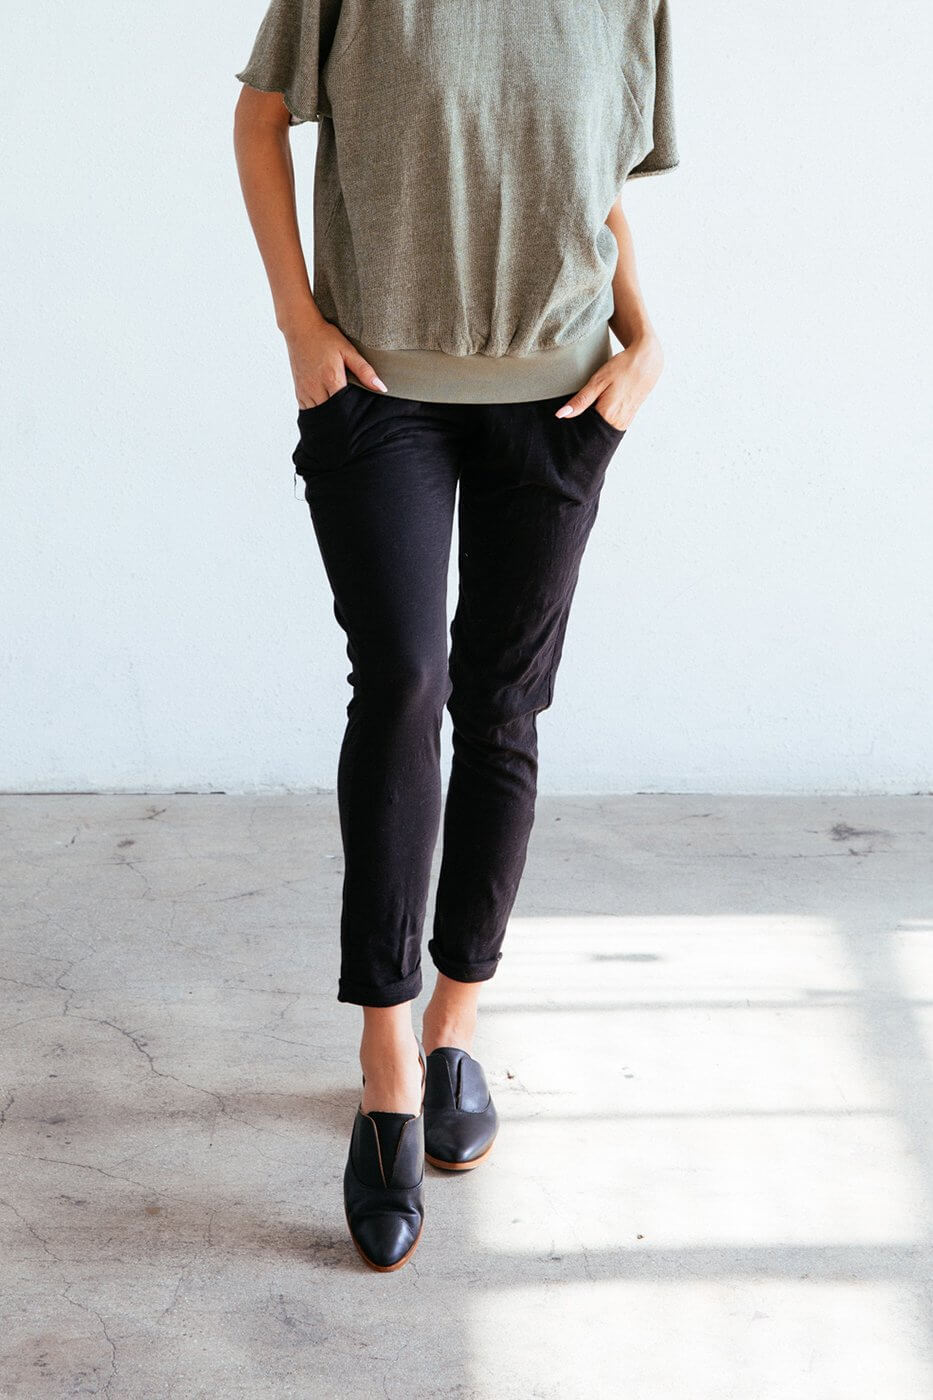 Sequoia Pant in Black